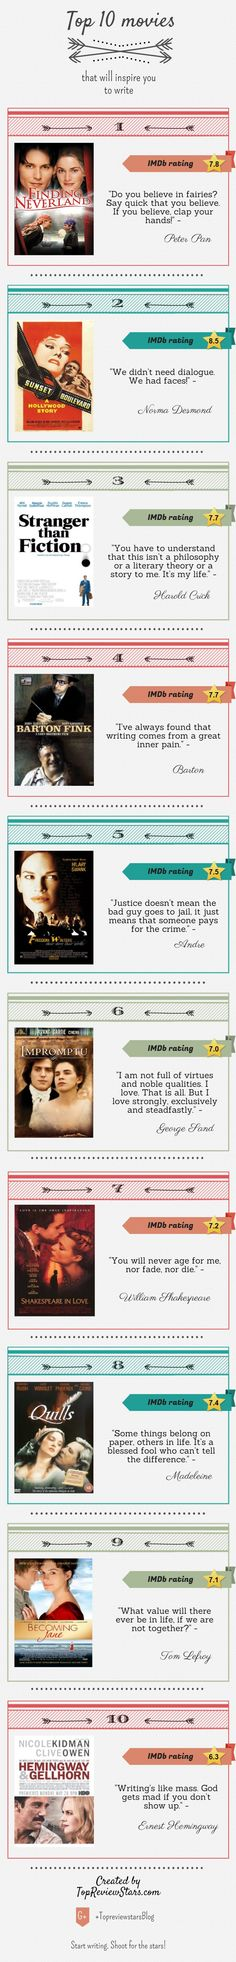 10 Movies that Will Inspire You to Write #infographic #Writing #Movies